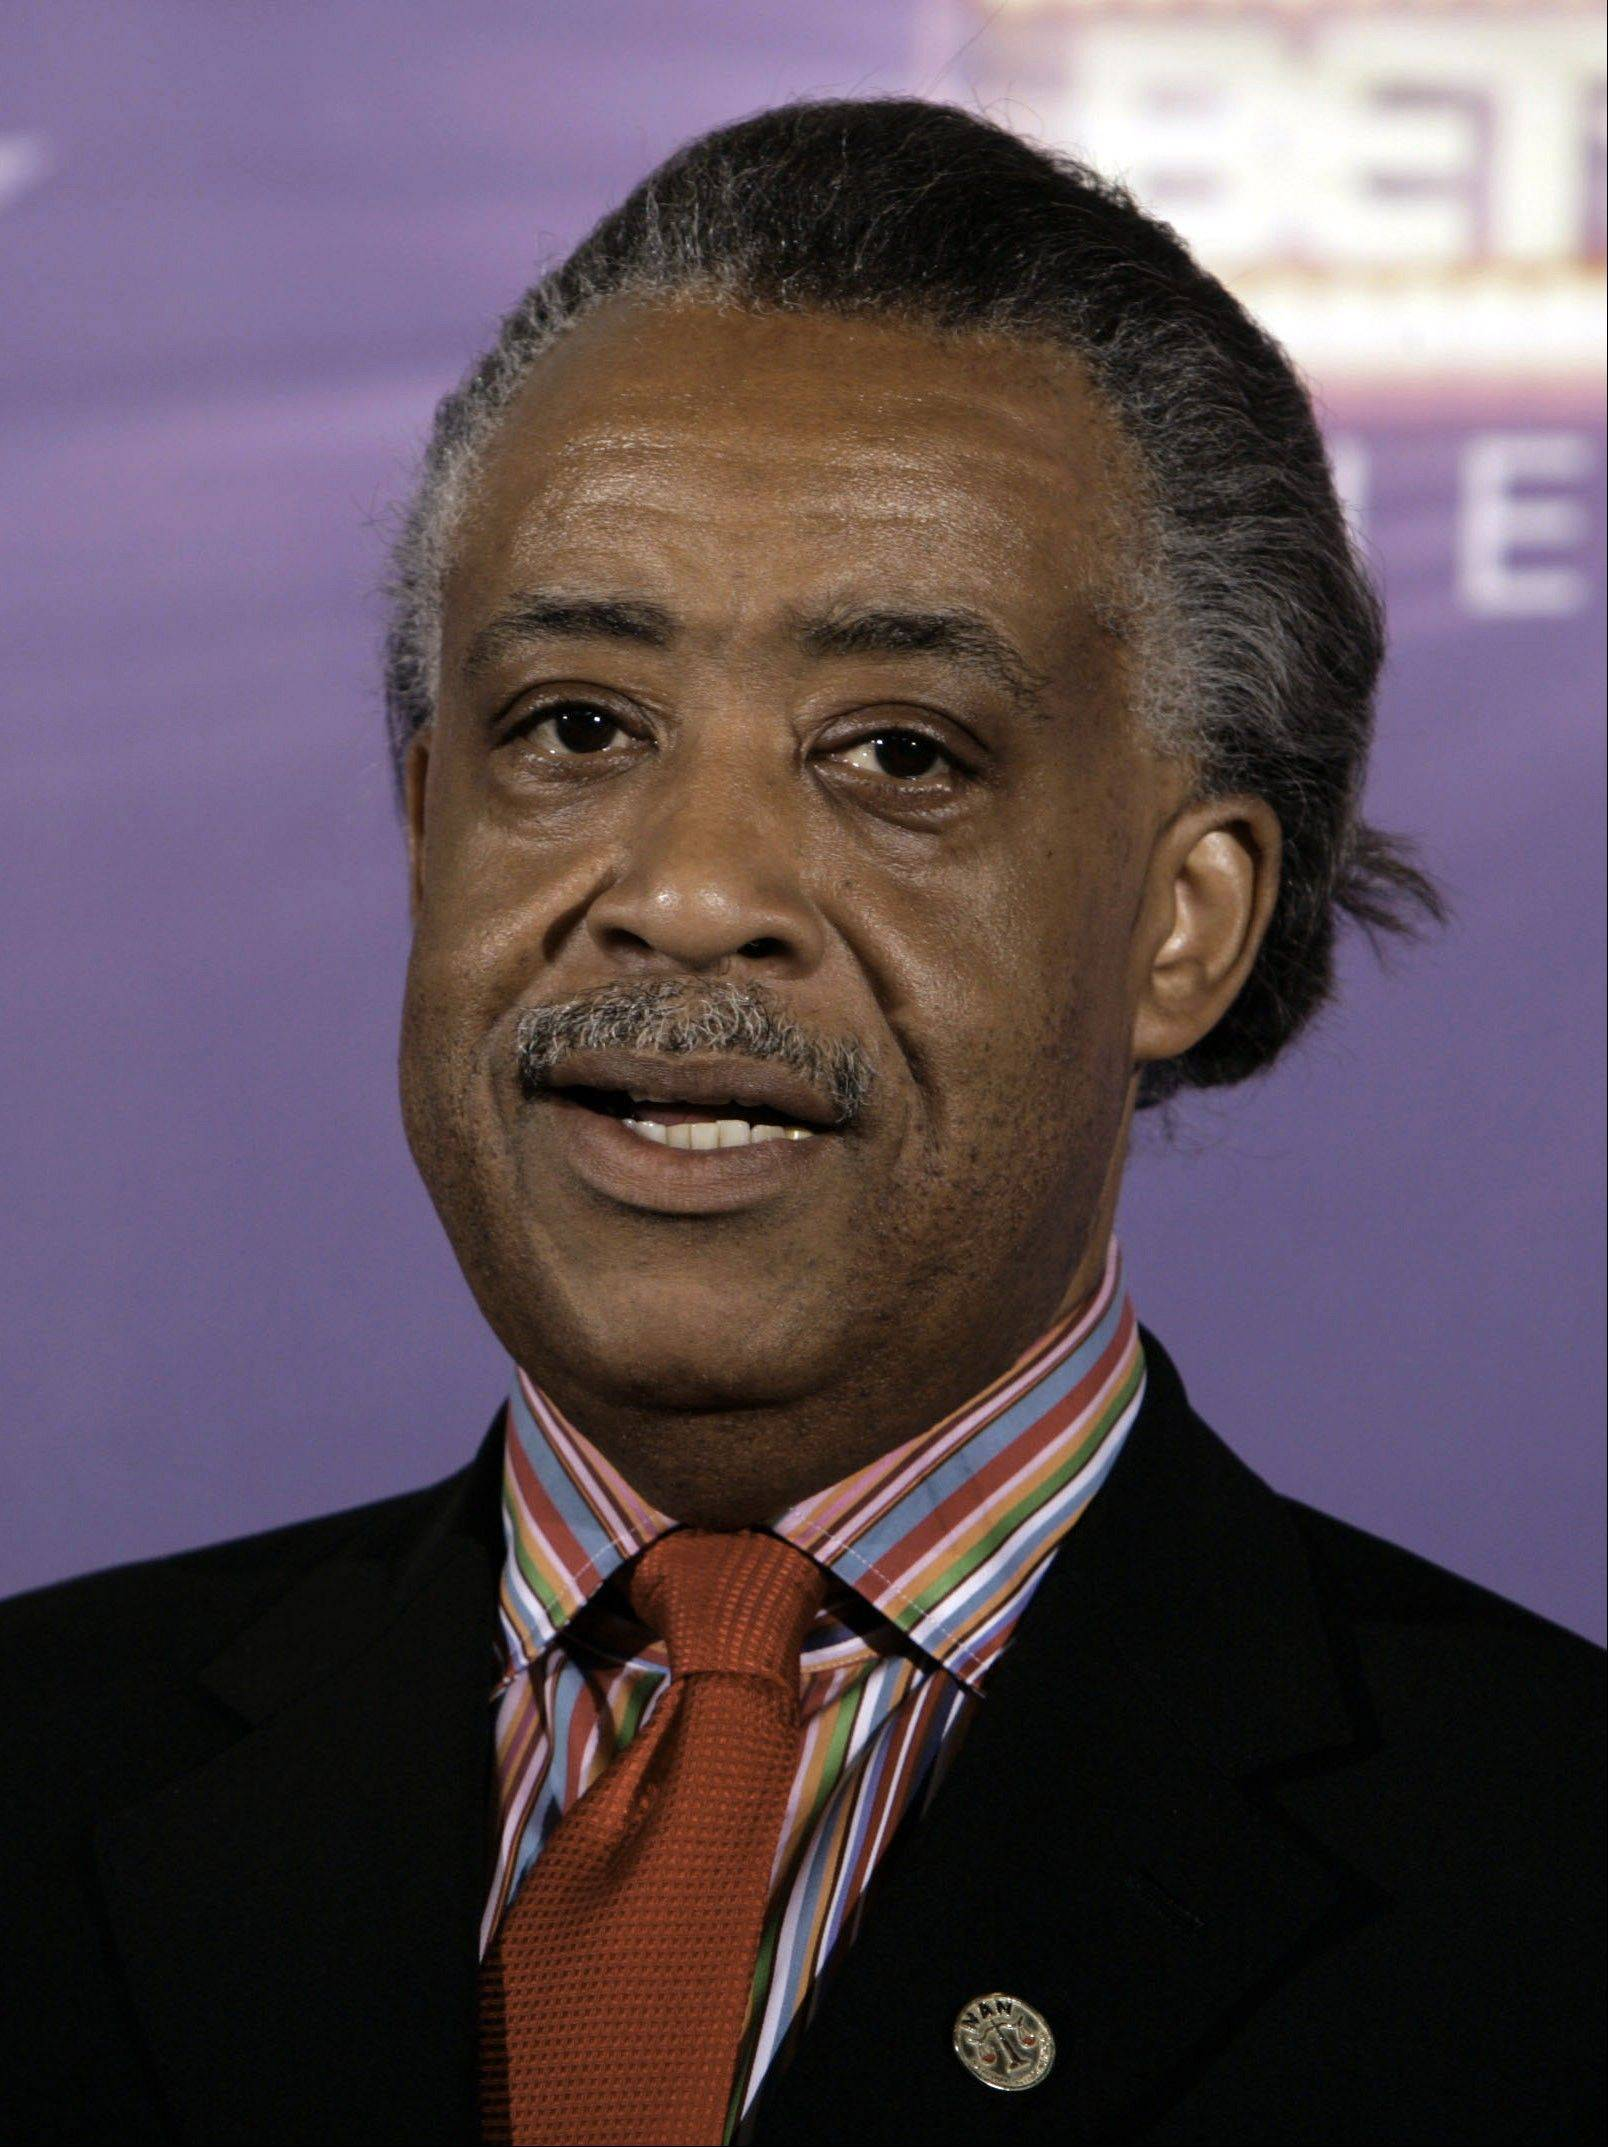 Sharpton to do anti-violence work in Chicago